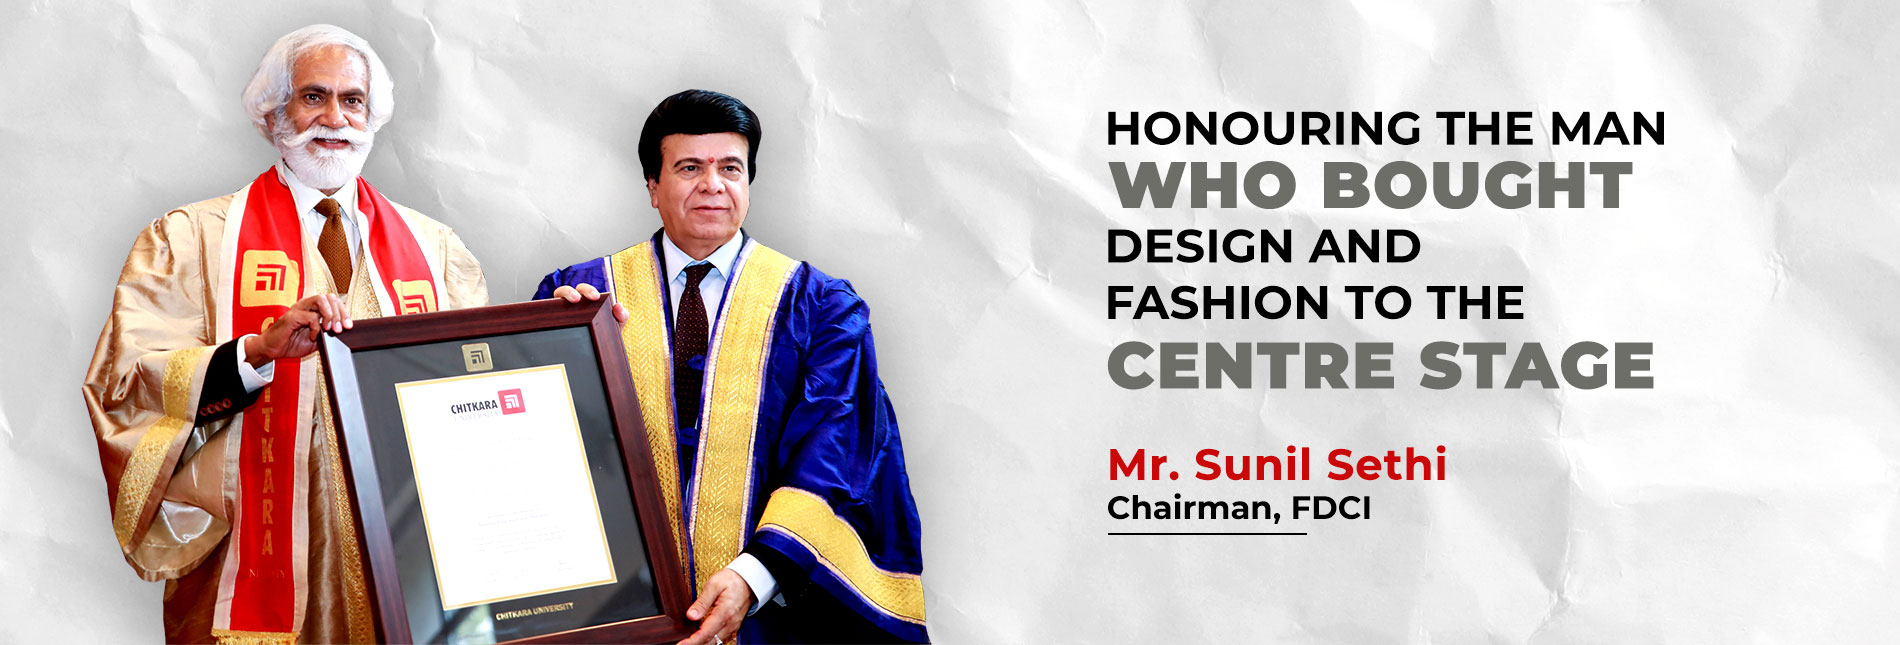 Chitkara University Confers Mr Sunil Sethi (President, FDCI) with The Degree of Doctor of Literature